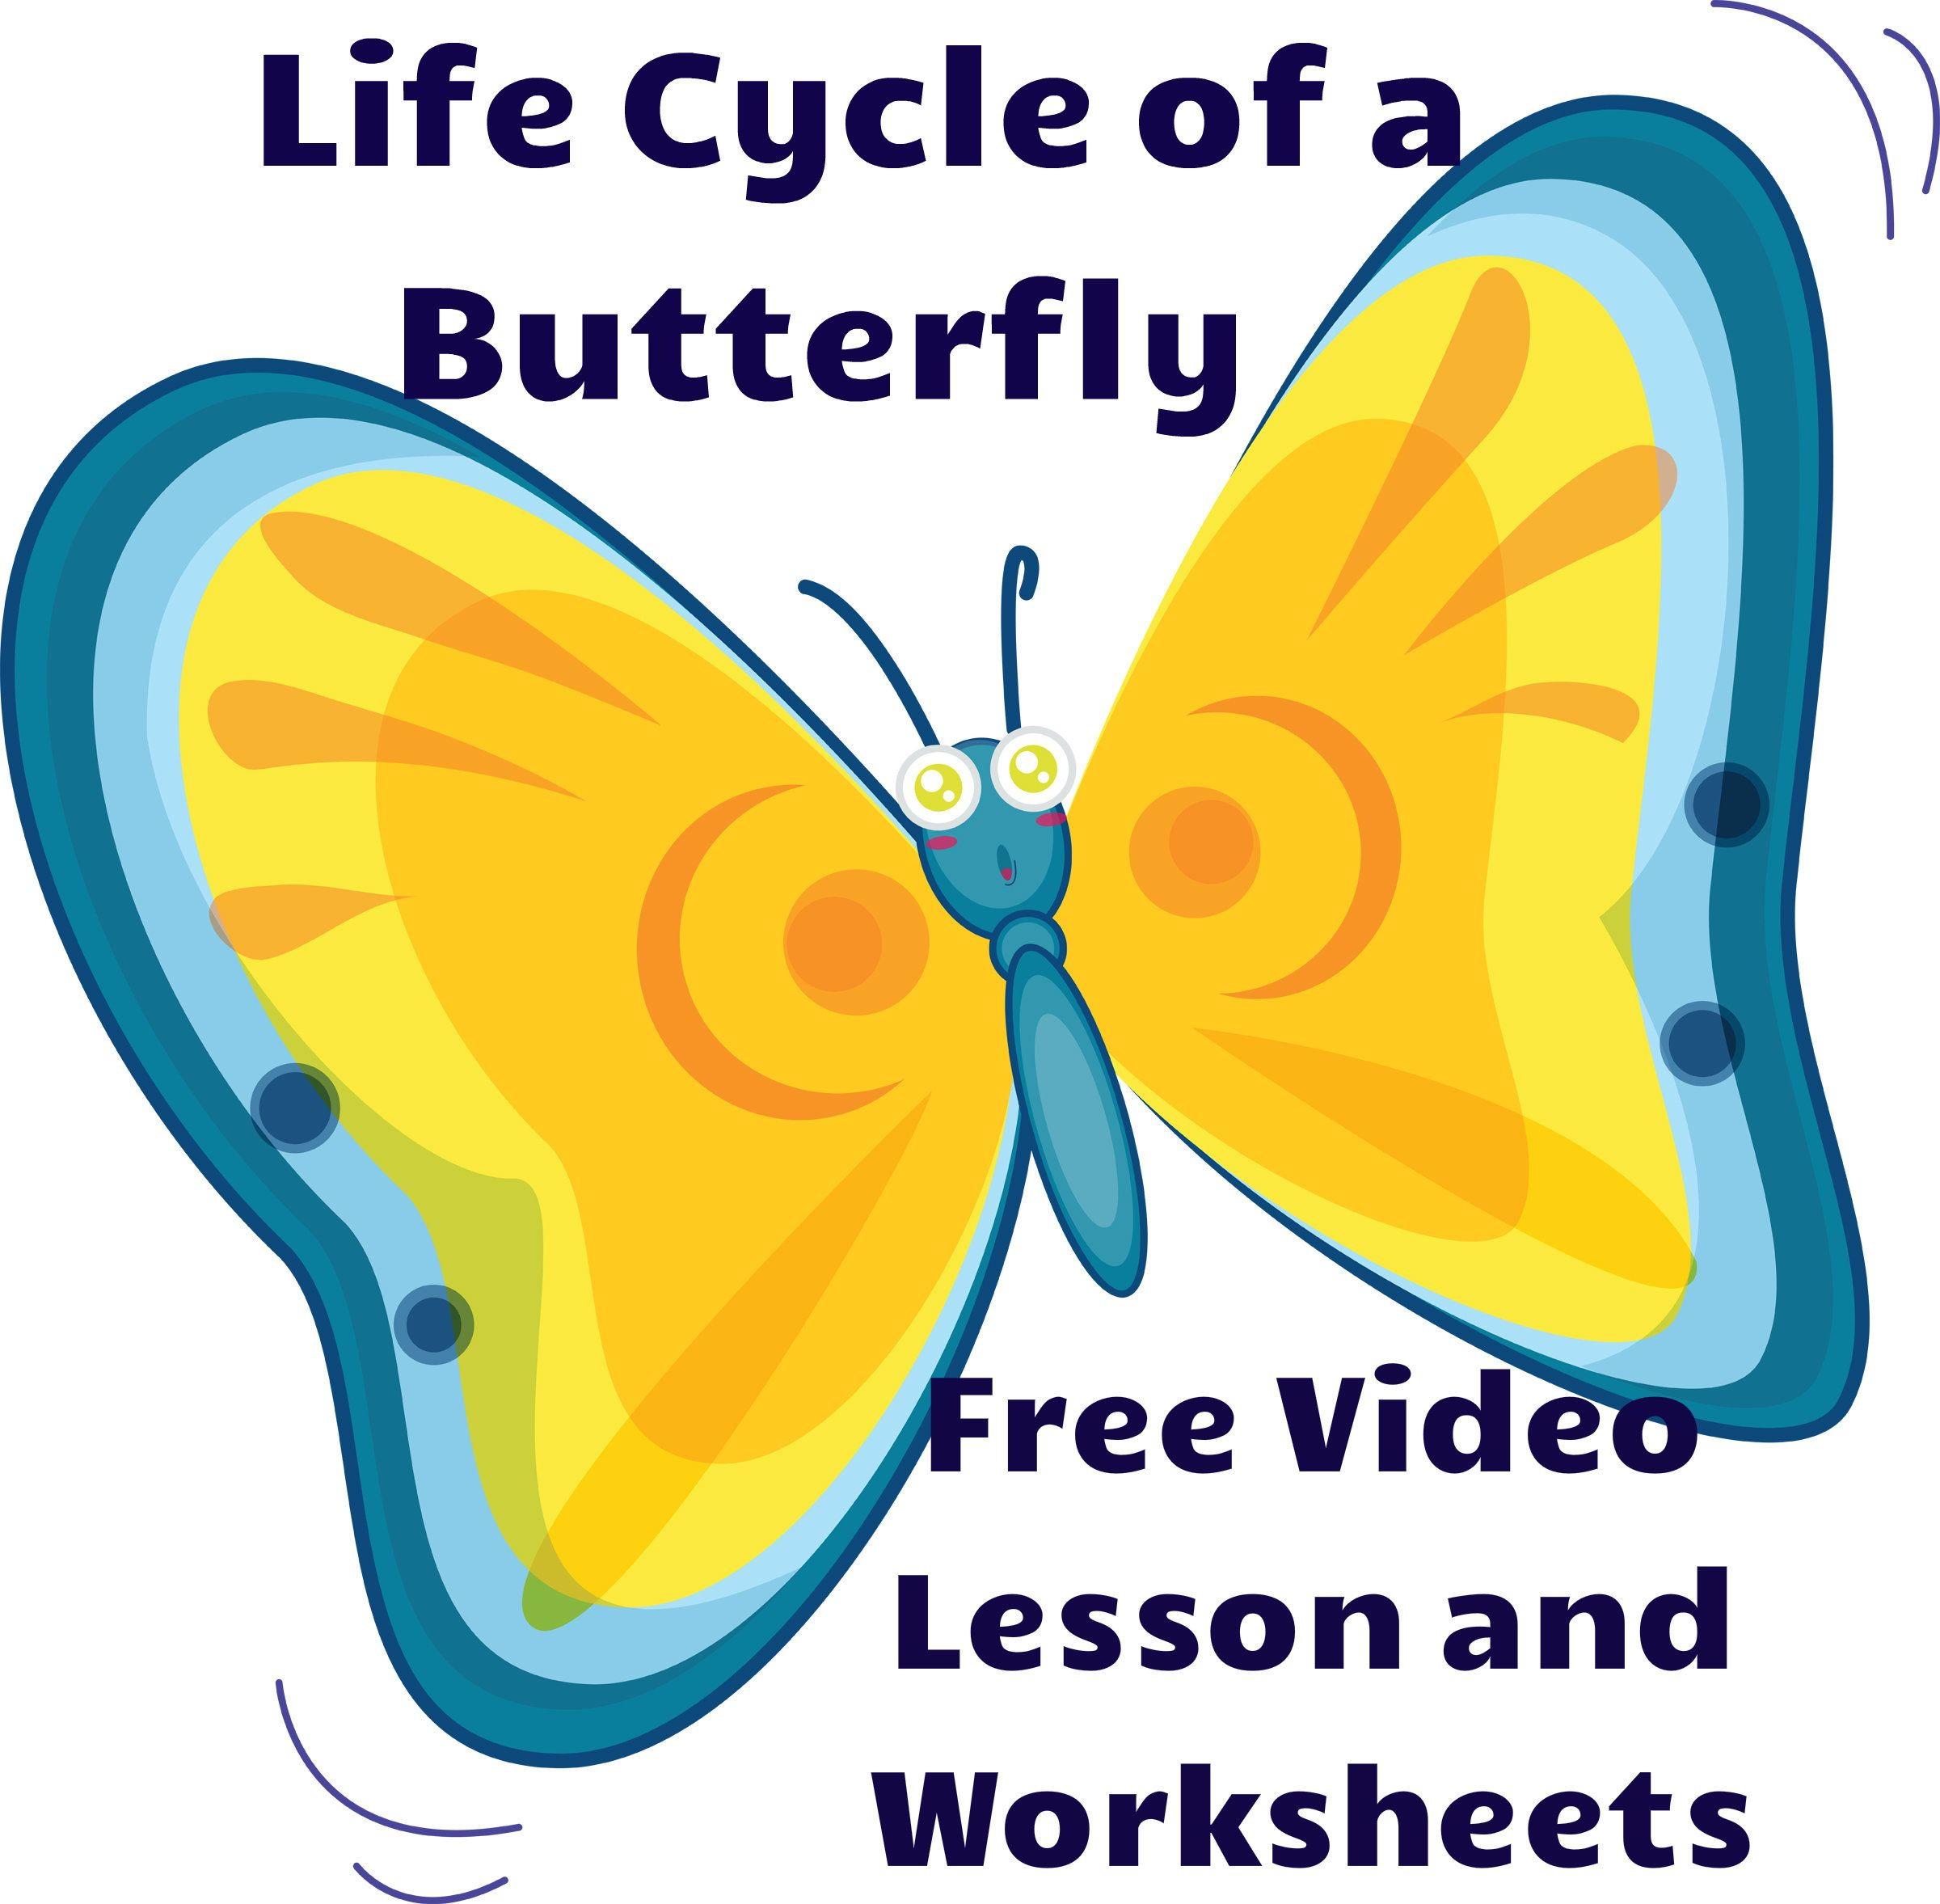 Life Cycle Of A Butterfly Free Video Lesson And